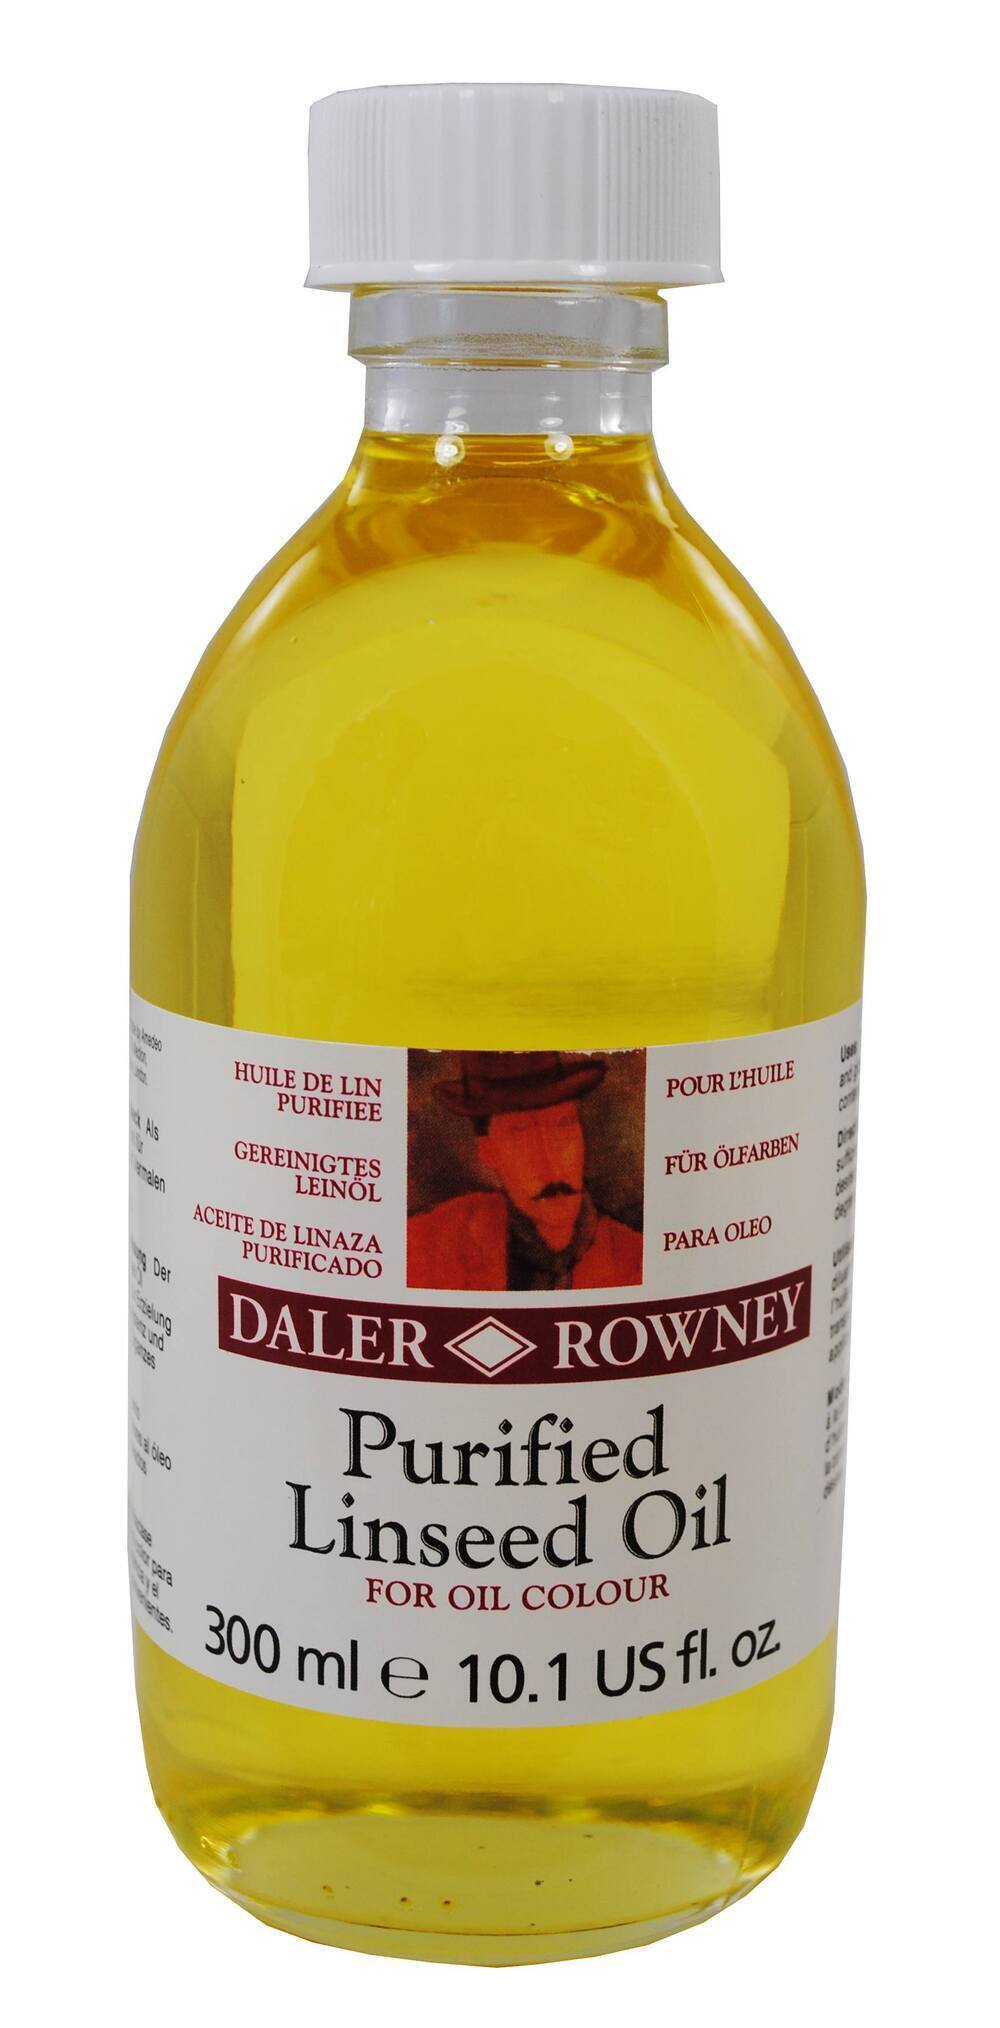 Purified Linseed Oil